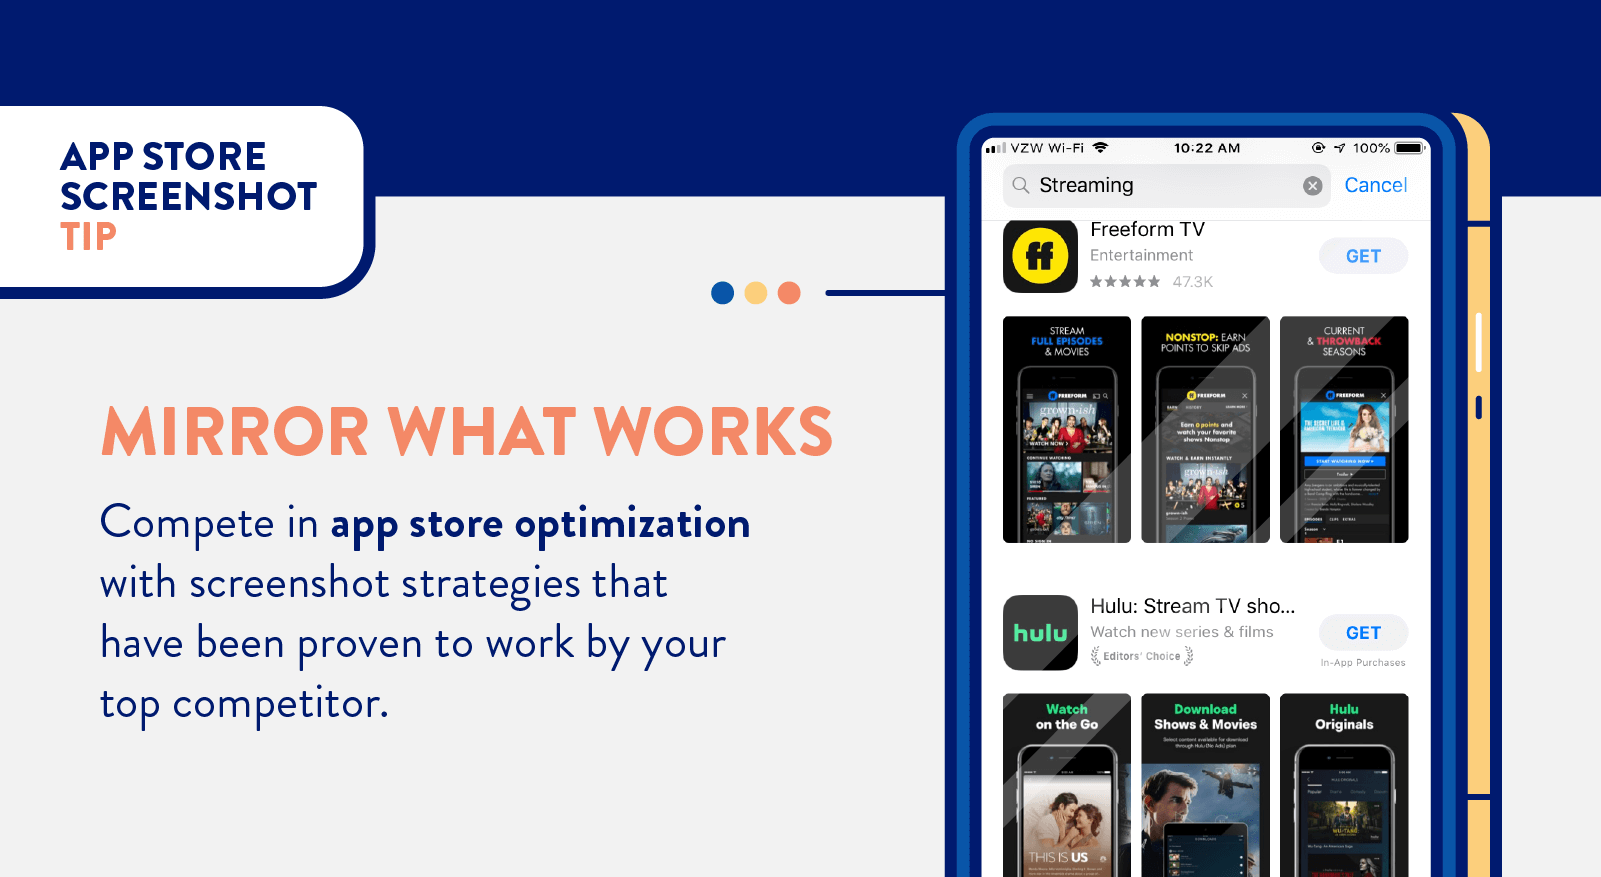 app store screenshots tip to mirror what works for top competitors